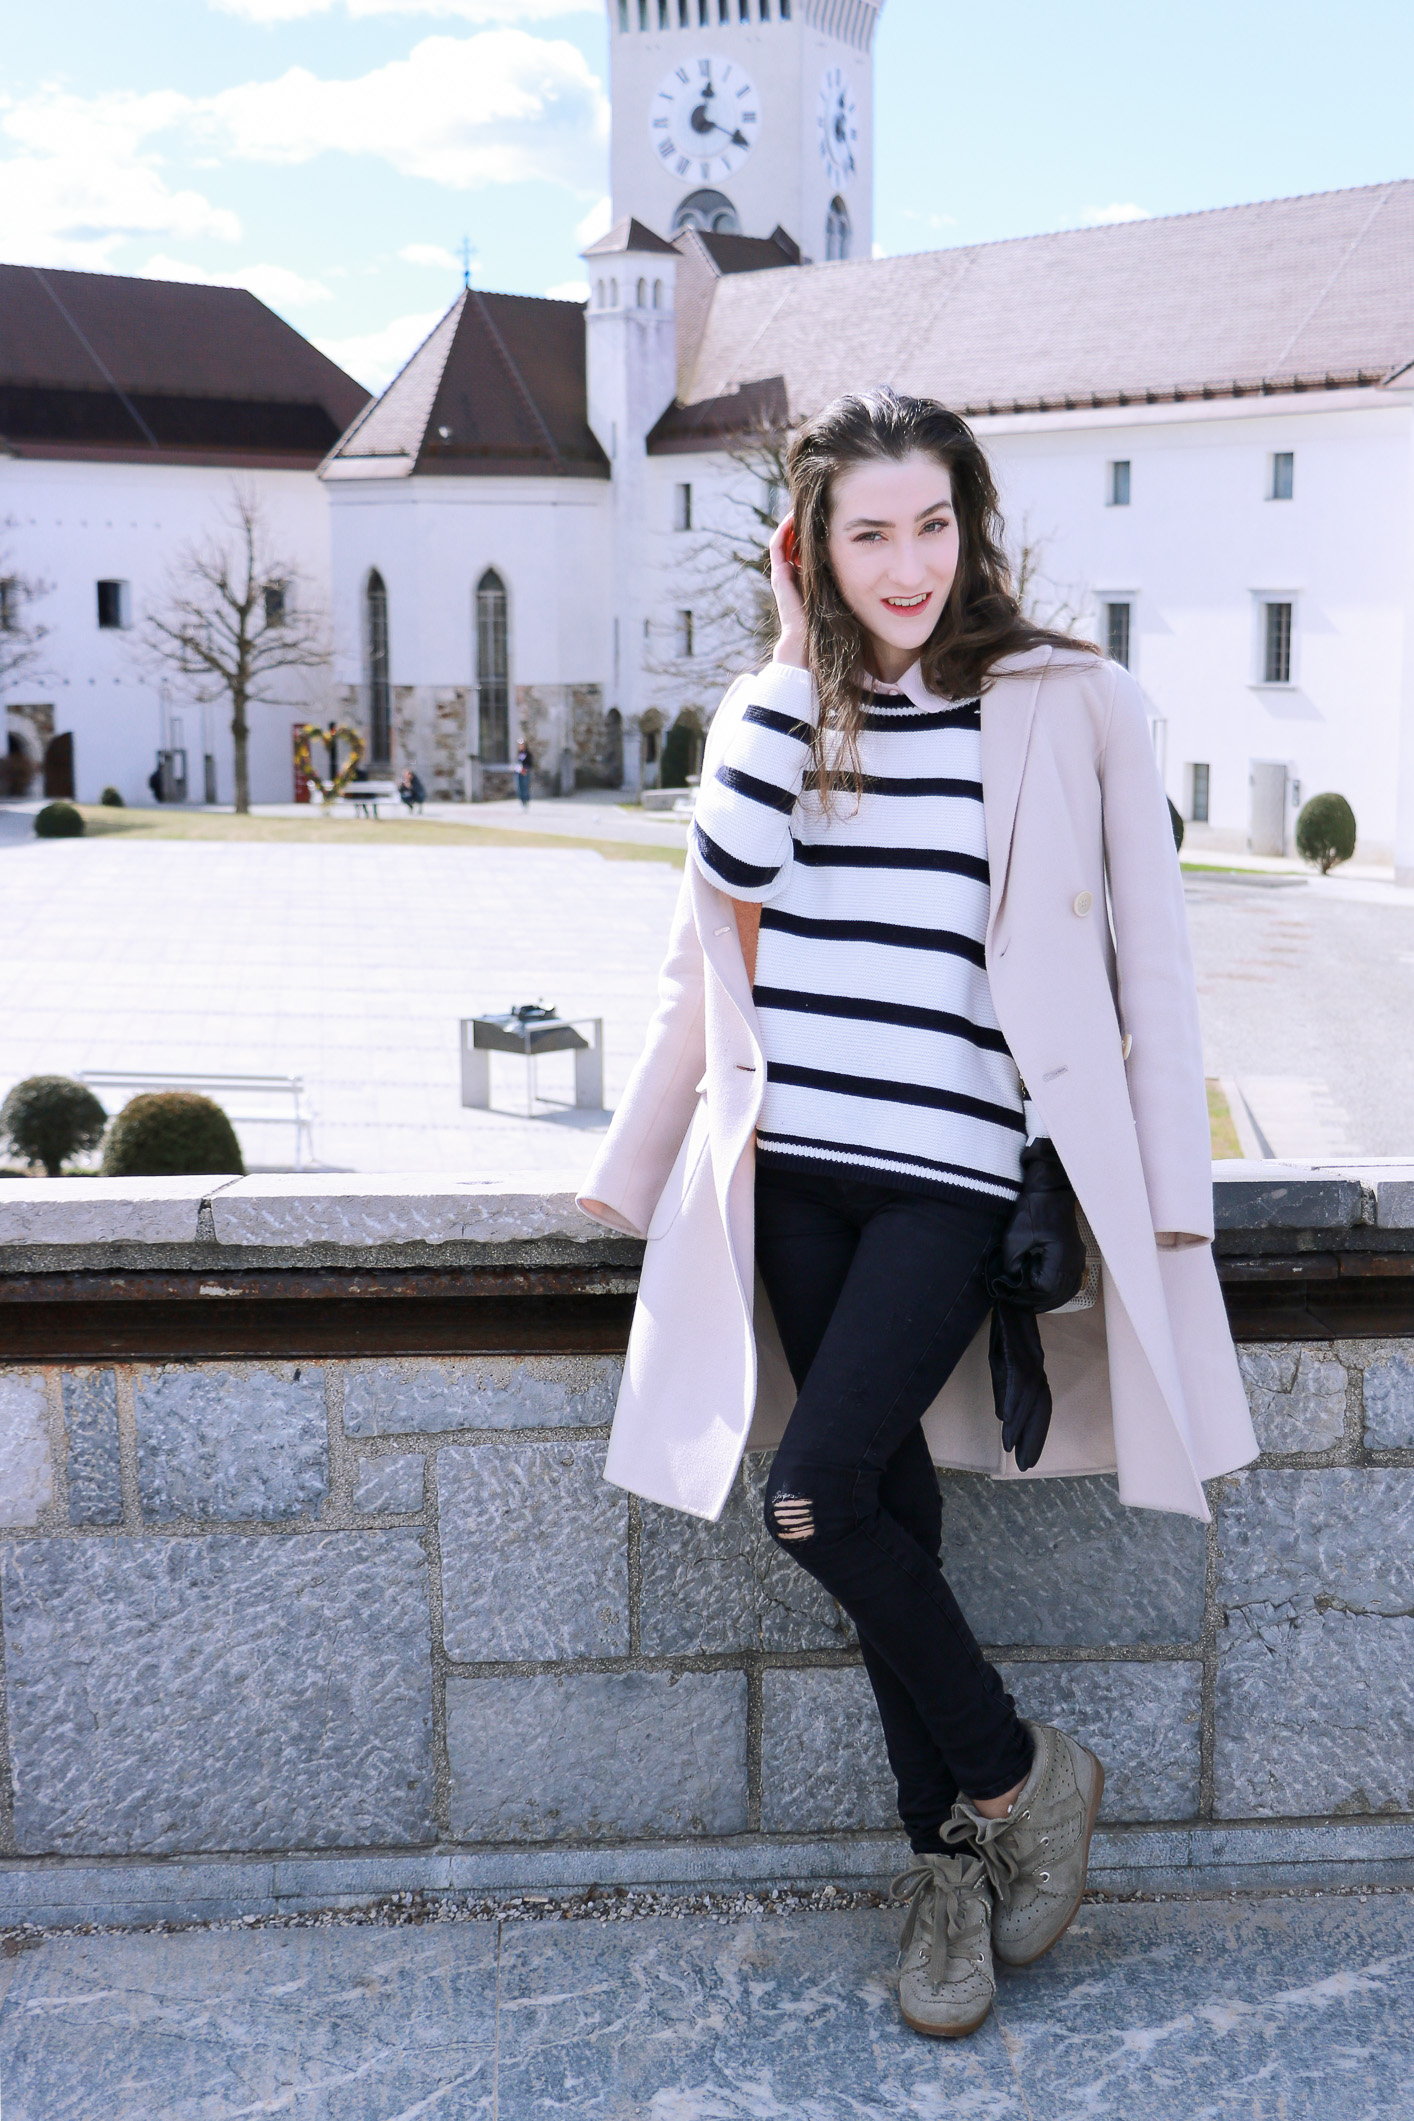 Fashion blogger Veronika Lipar of Brunette From Wall Street how to dress as a stylish fashionista on her city break